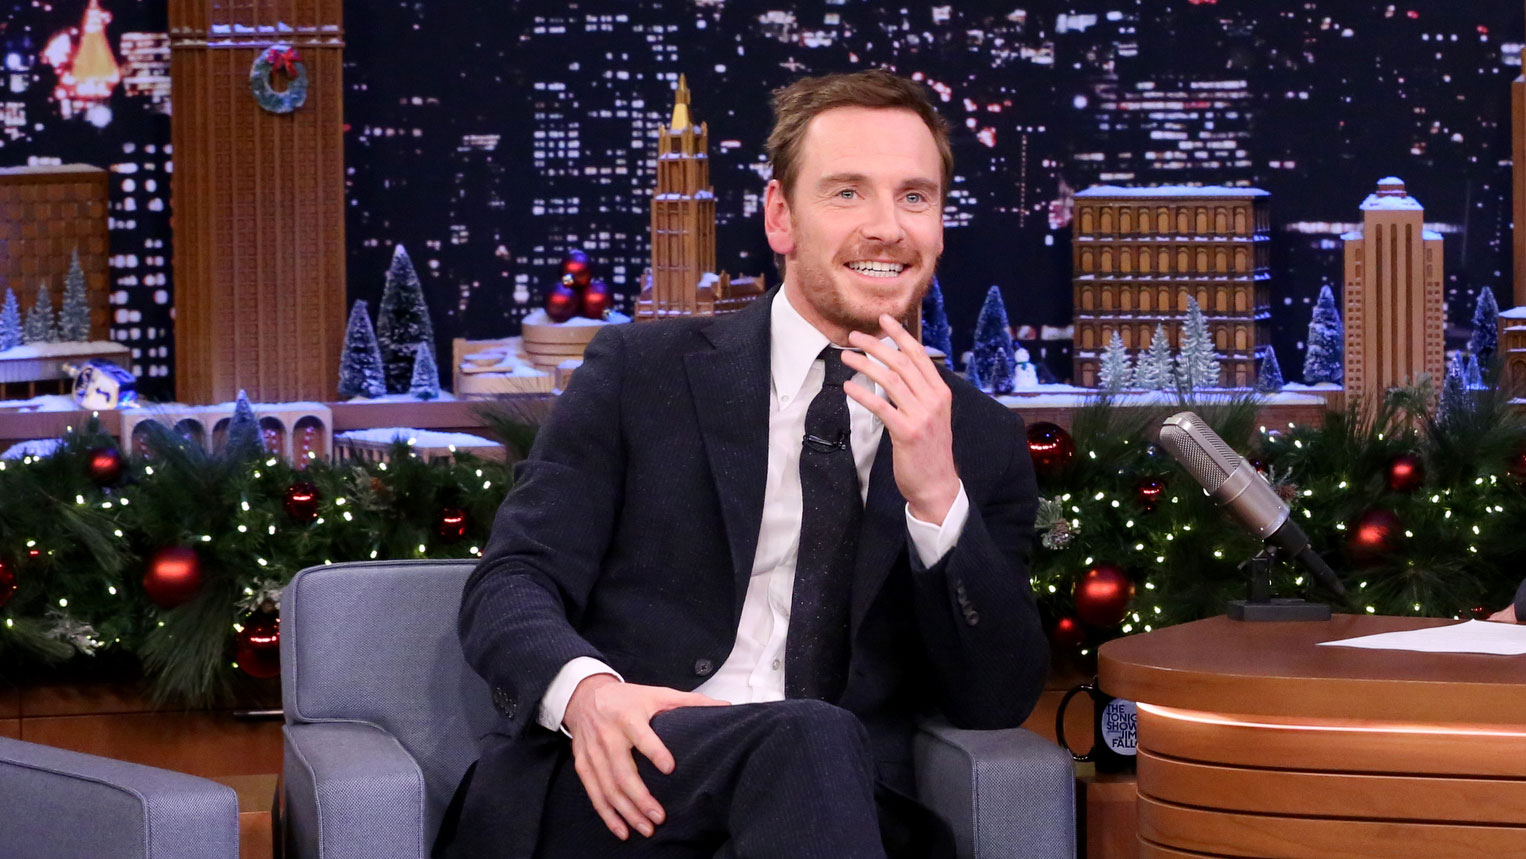 Michael Fassbender Explains Assassin's Creed's Genetic Time Travel to Jimmy